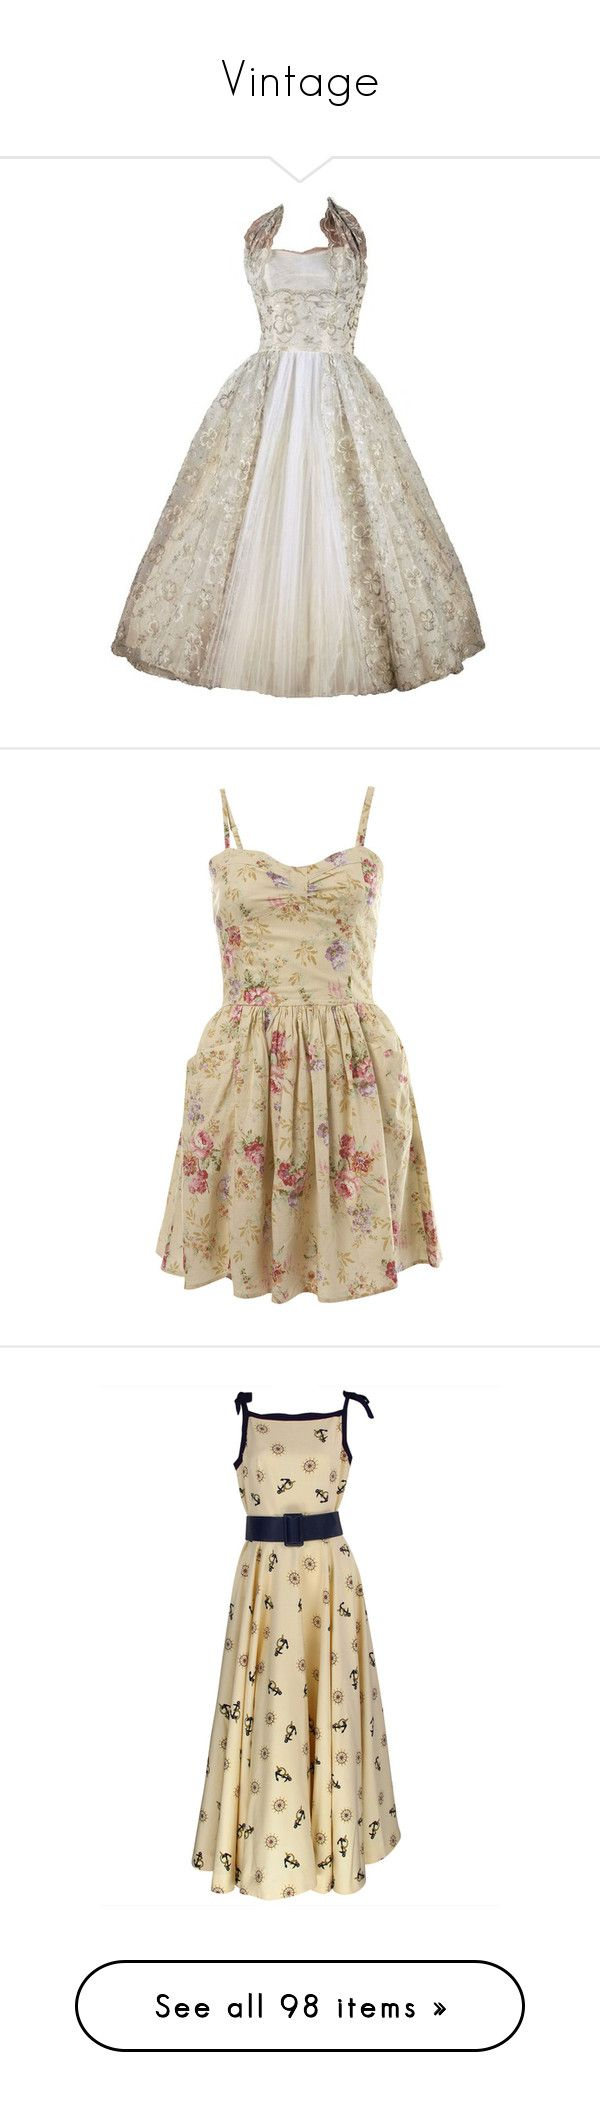 """Vintage"" by enchantedrose33 ❤ liked on Polyvore featuring dresses, vestidos, short dresses, vestiti, women's clothing, cotton mini dress, brown cocktail dress, mini dress, short cotton dress and miss selfridge"